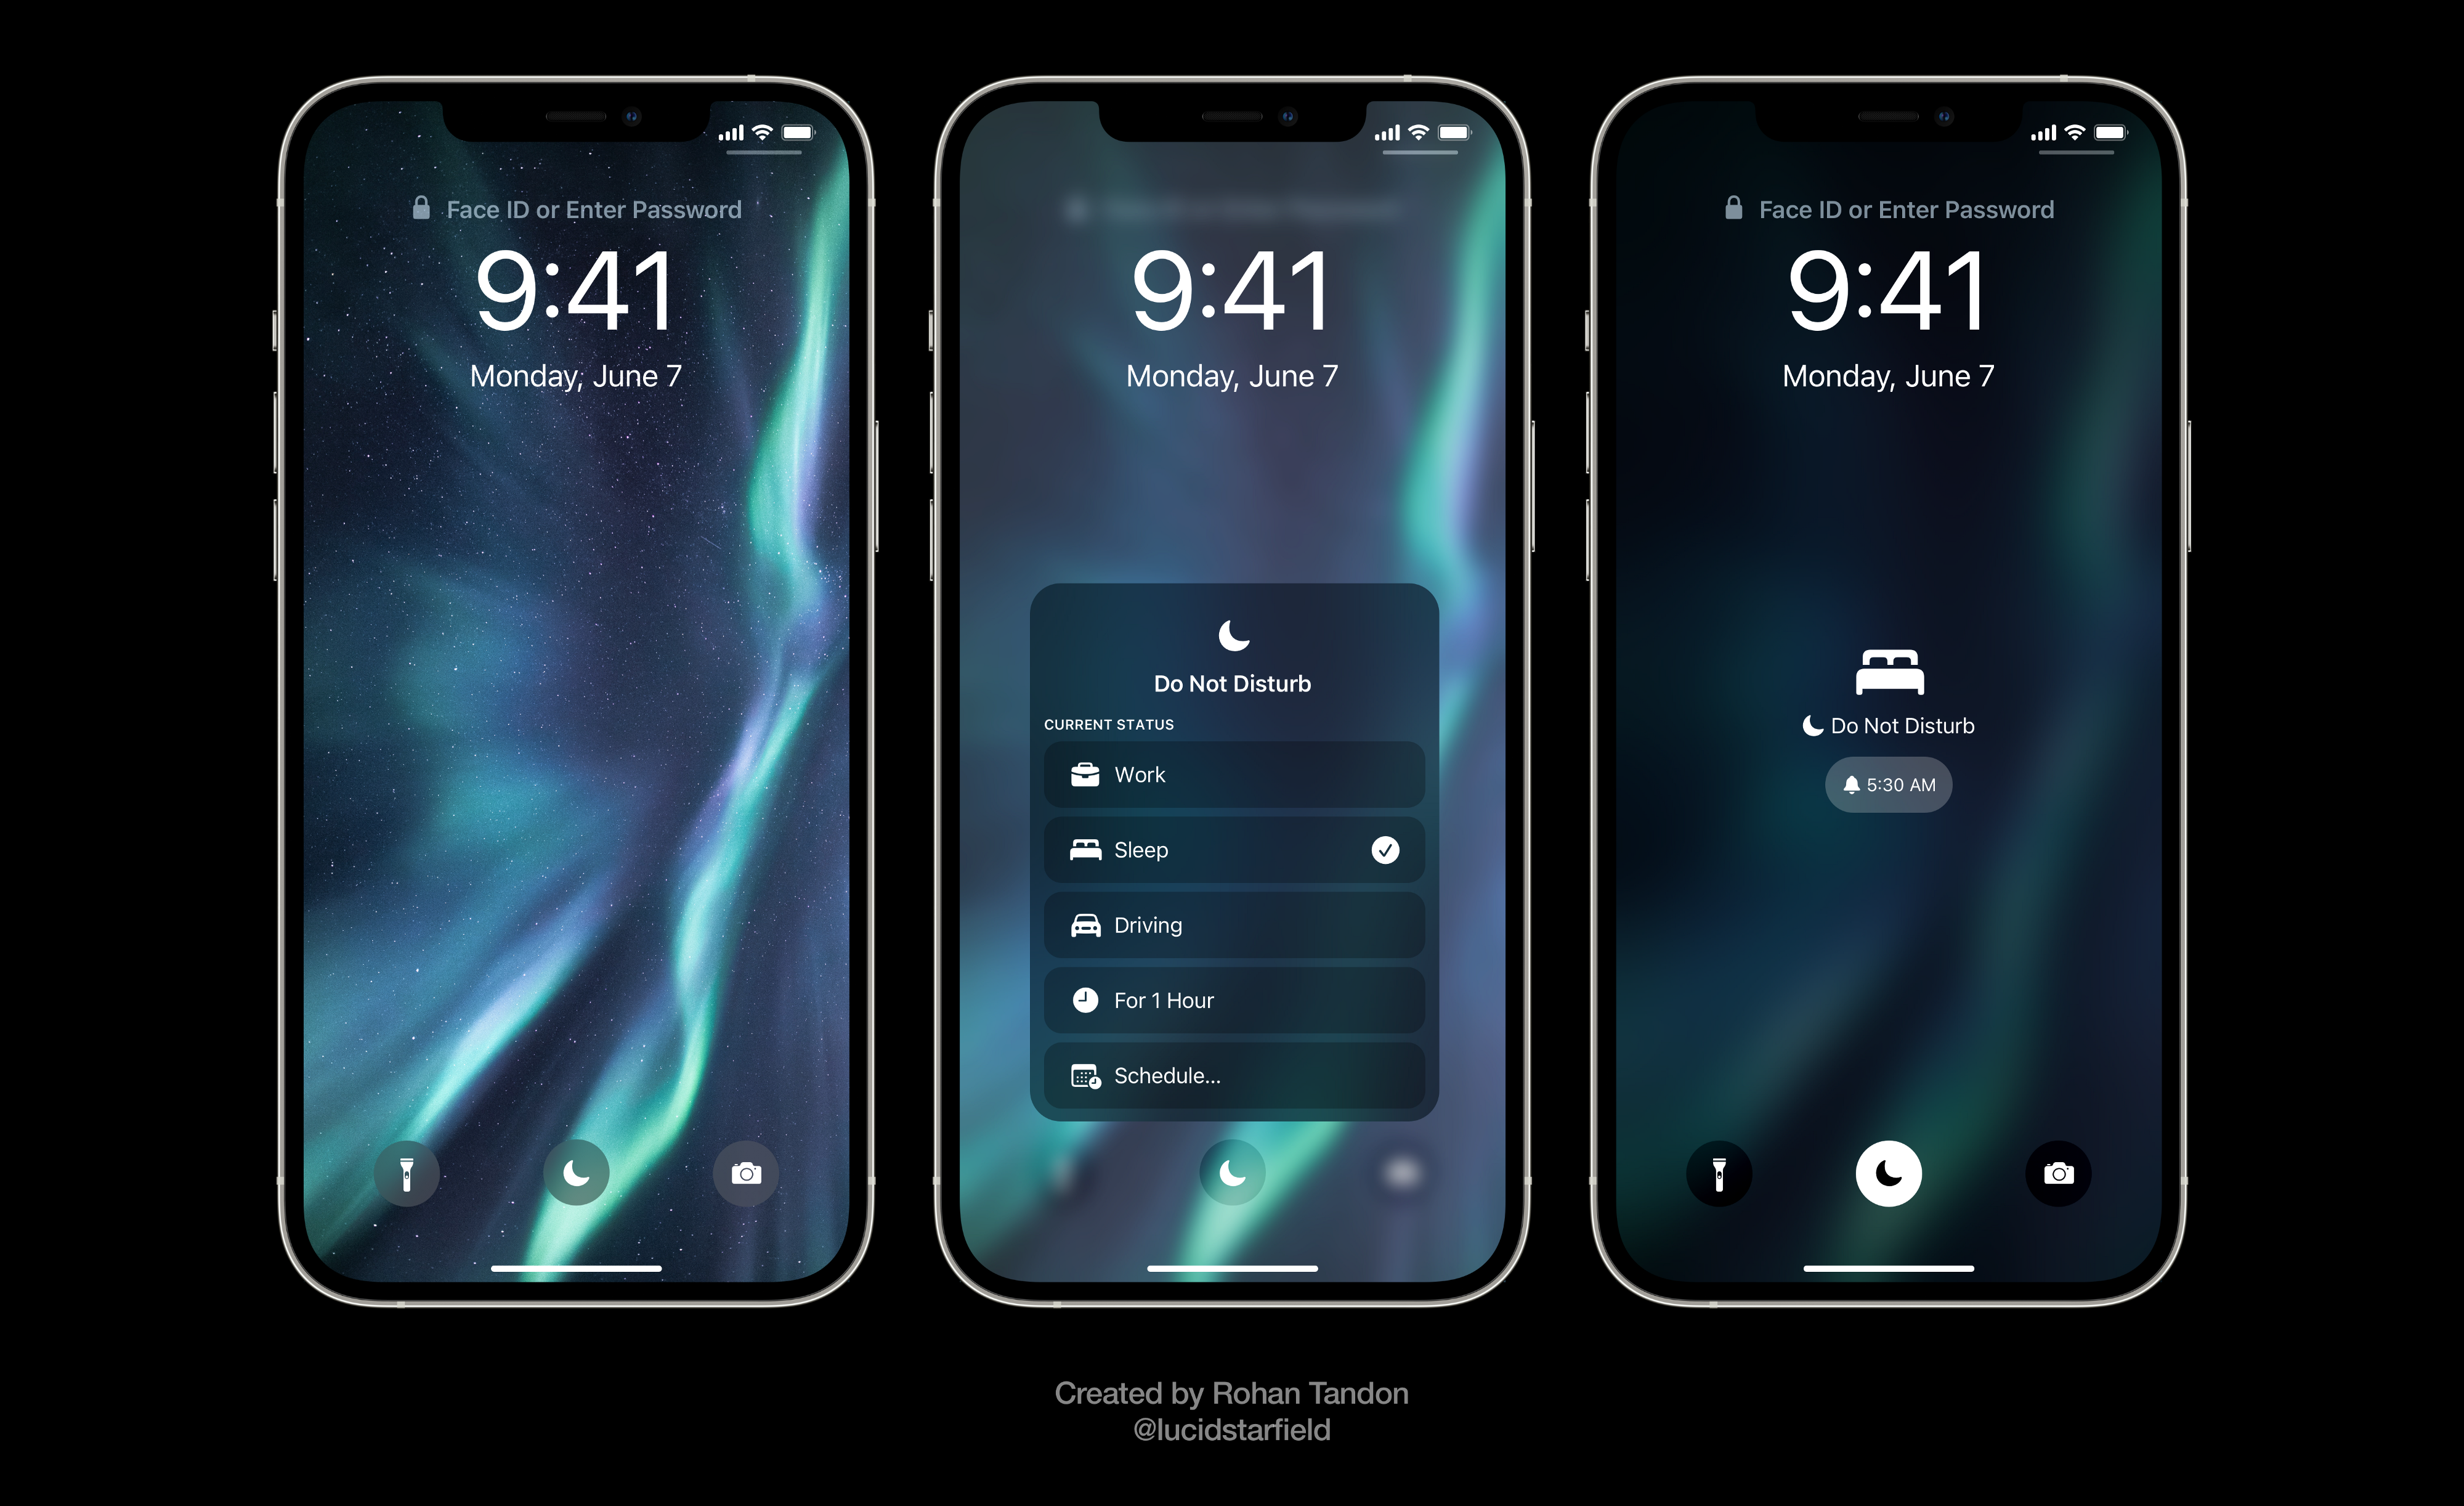 iOS 15 Aurora imagines a new feature that would allow users to set different notification preferences, depending on their current status.